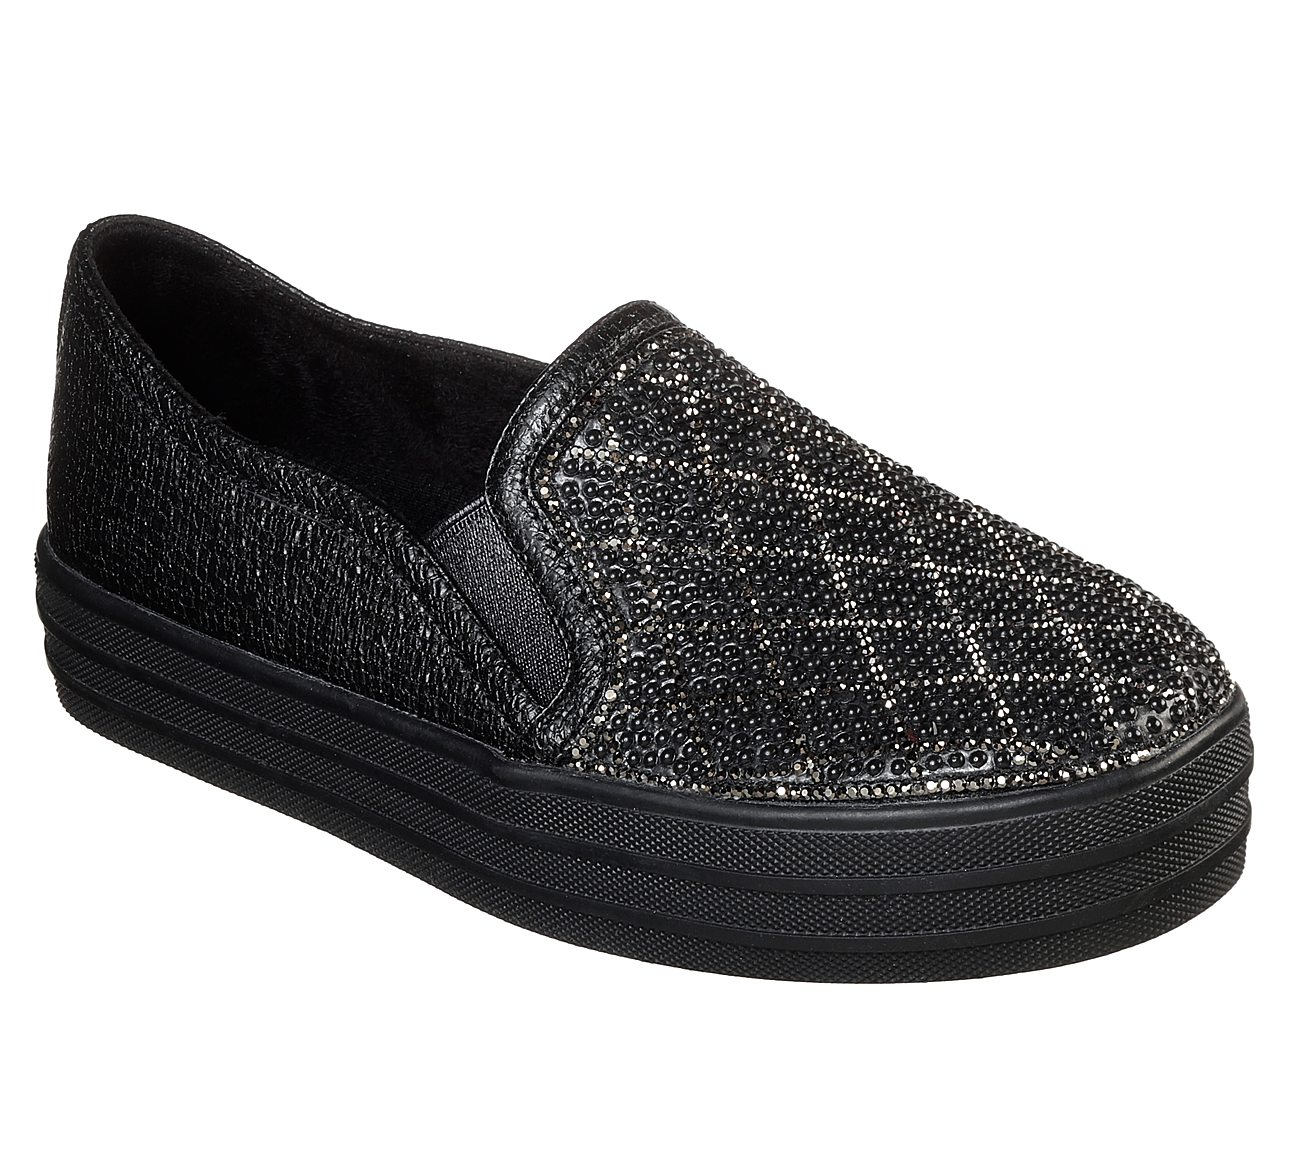 bb1a9f6c51ba Buy SKECHERS Double Up - Diamond Dancer SKECHER Street Shoes only £59.00